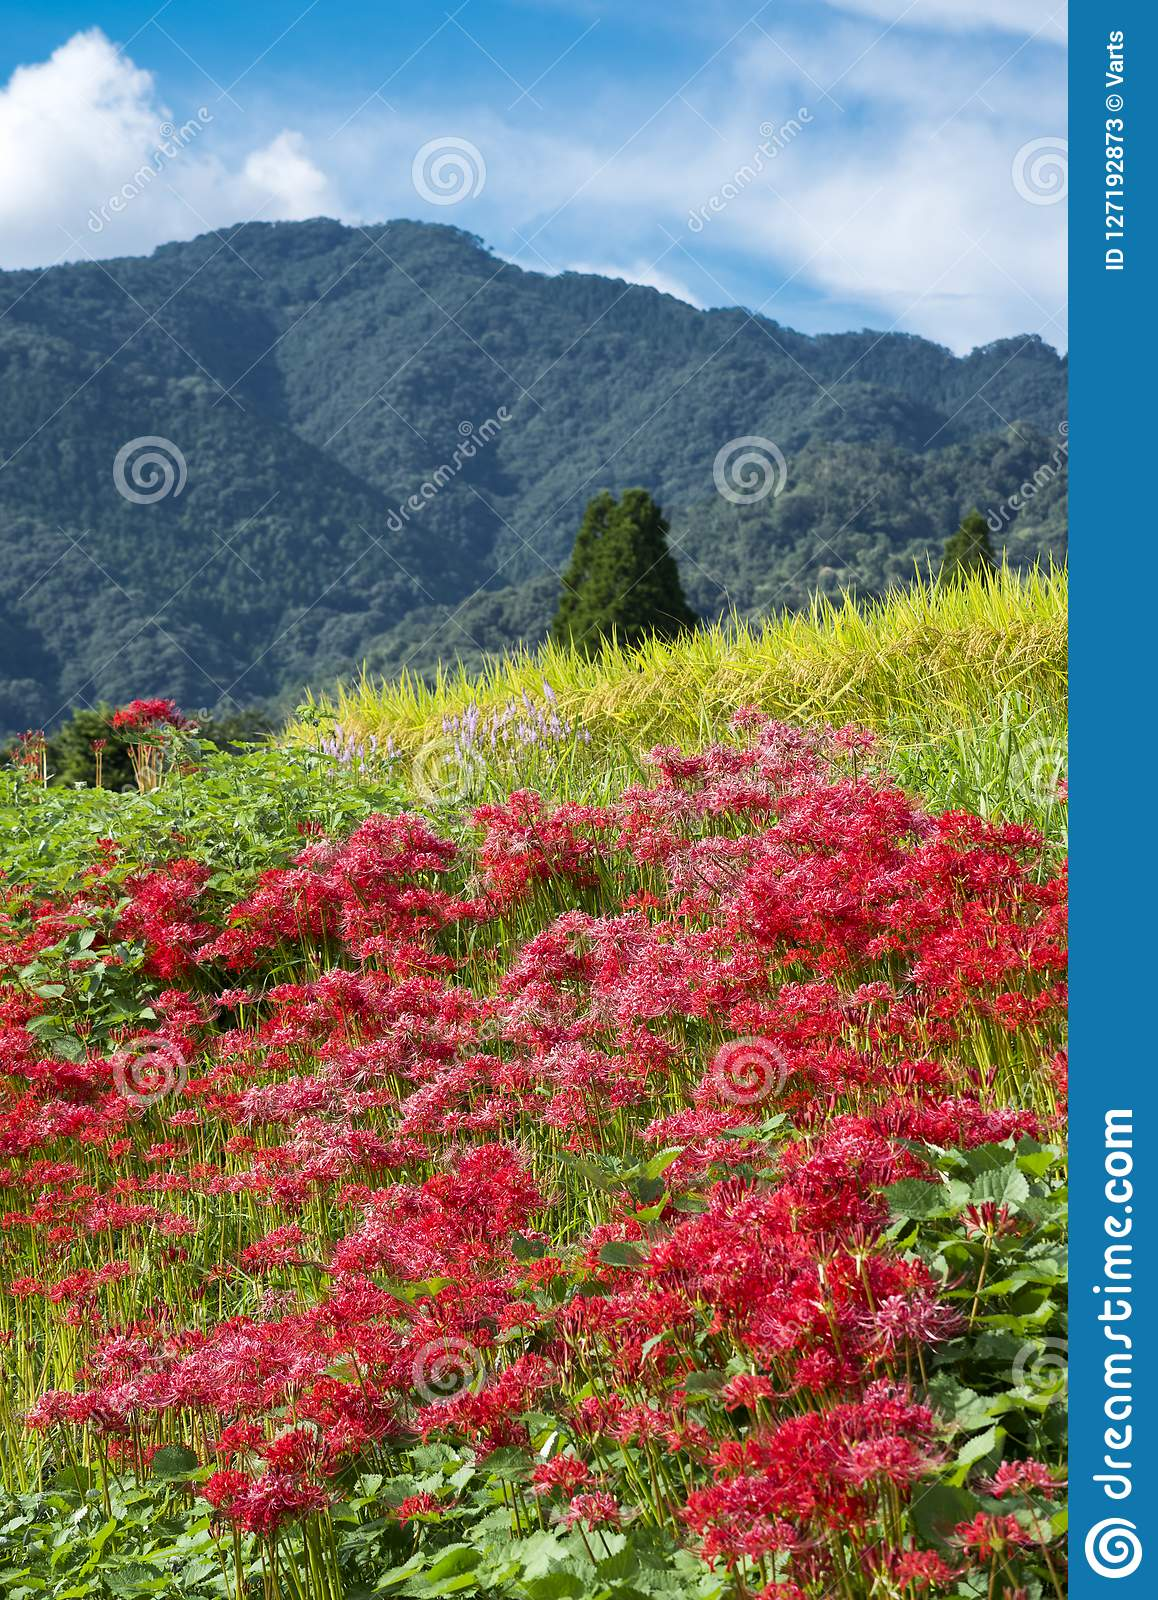 Red flowers and mountain